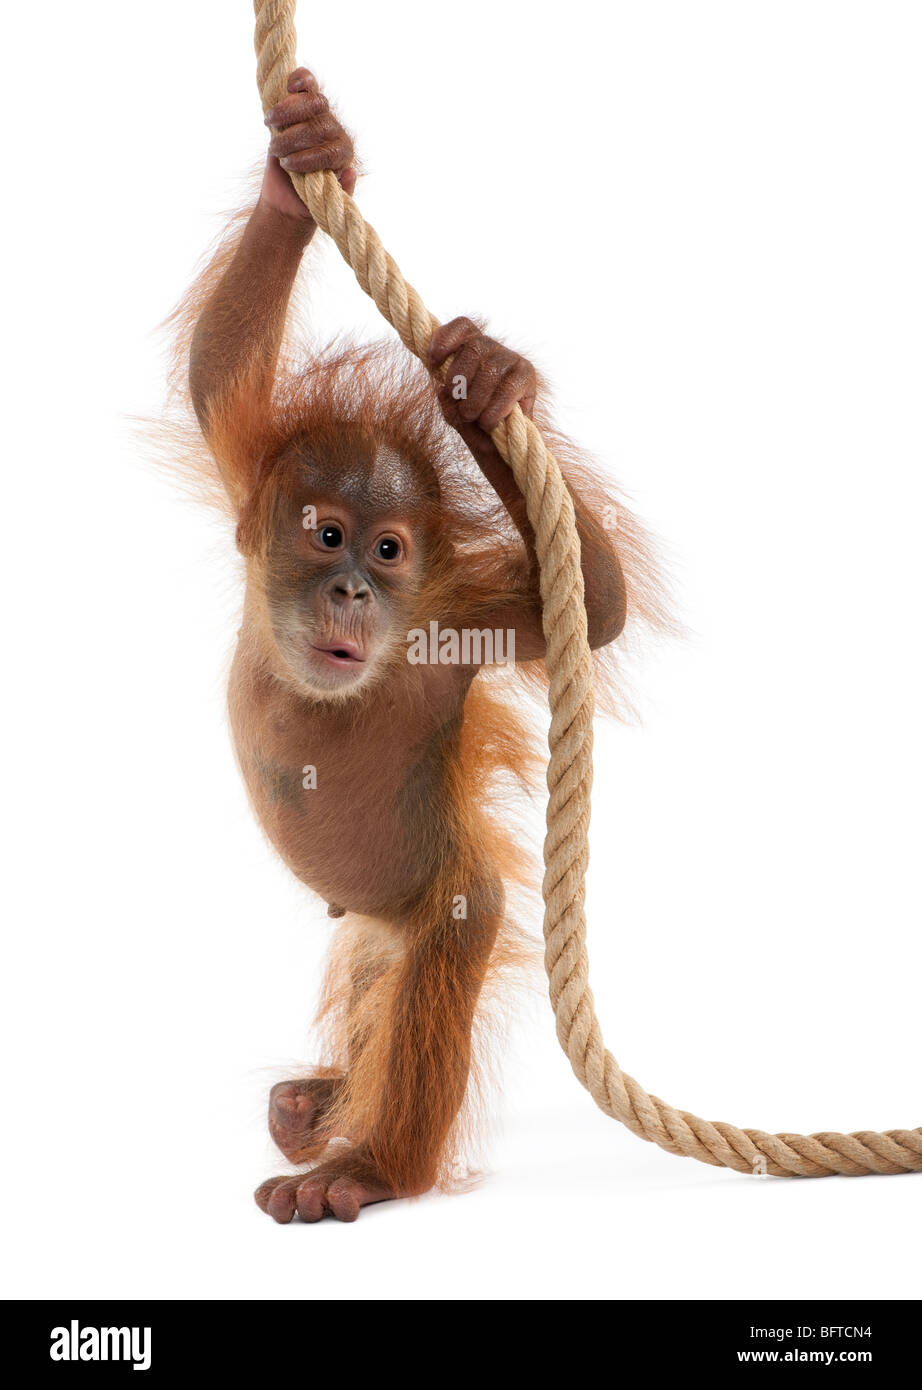 Baby Sumatran Orangutan hanging on rope, 4 months old, in front of white background - Stock Image